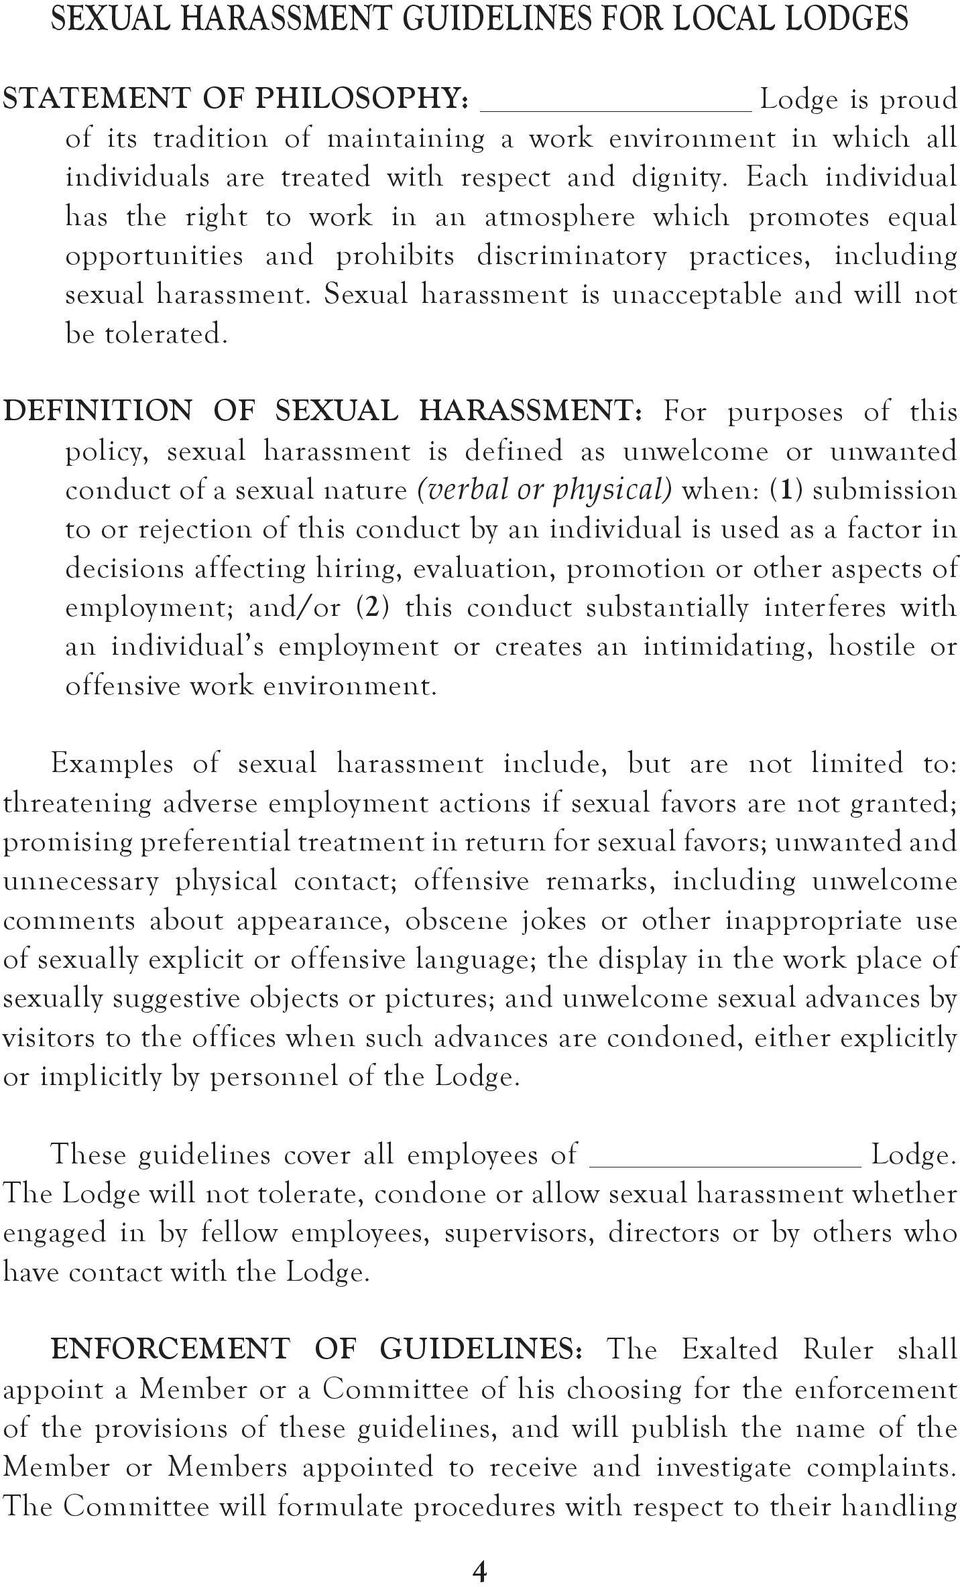 Sexual harassment is unacceptable and will not be tolerated.